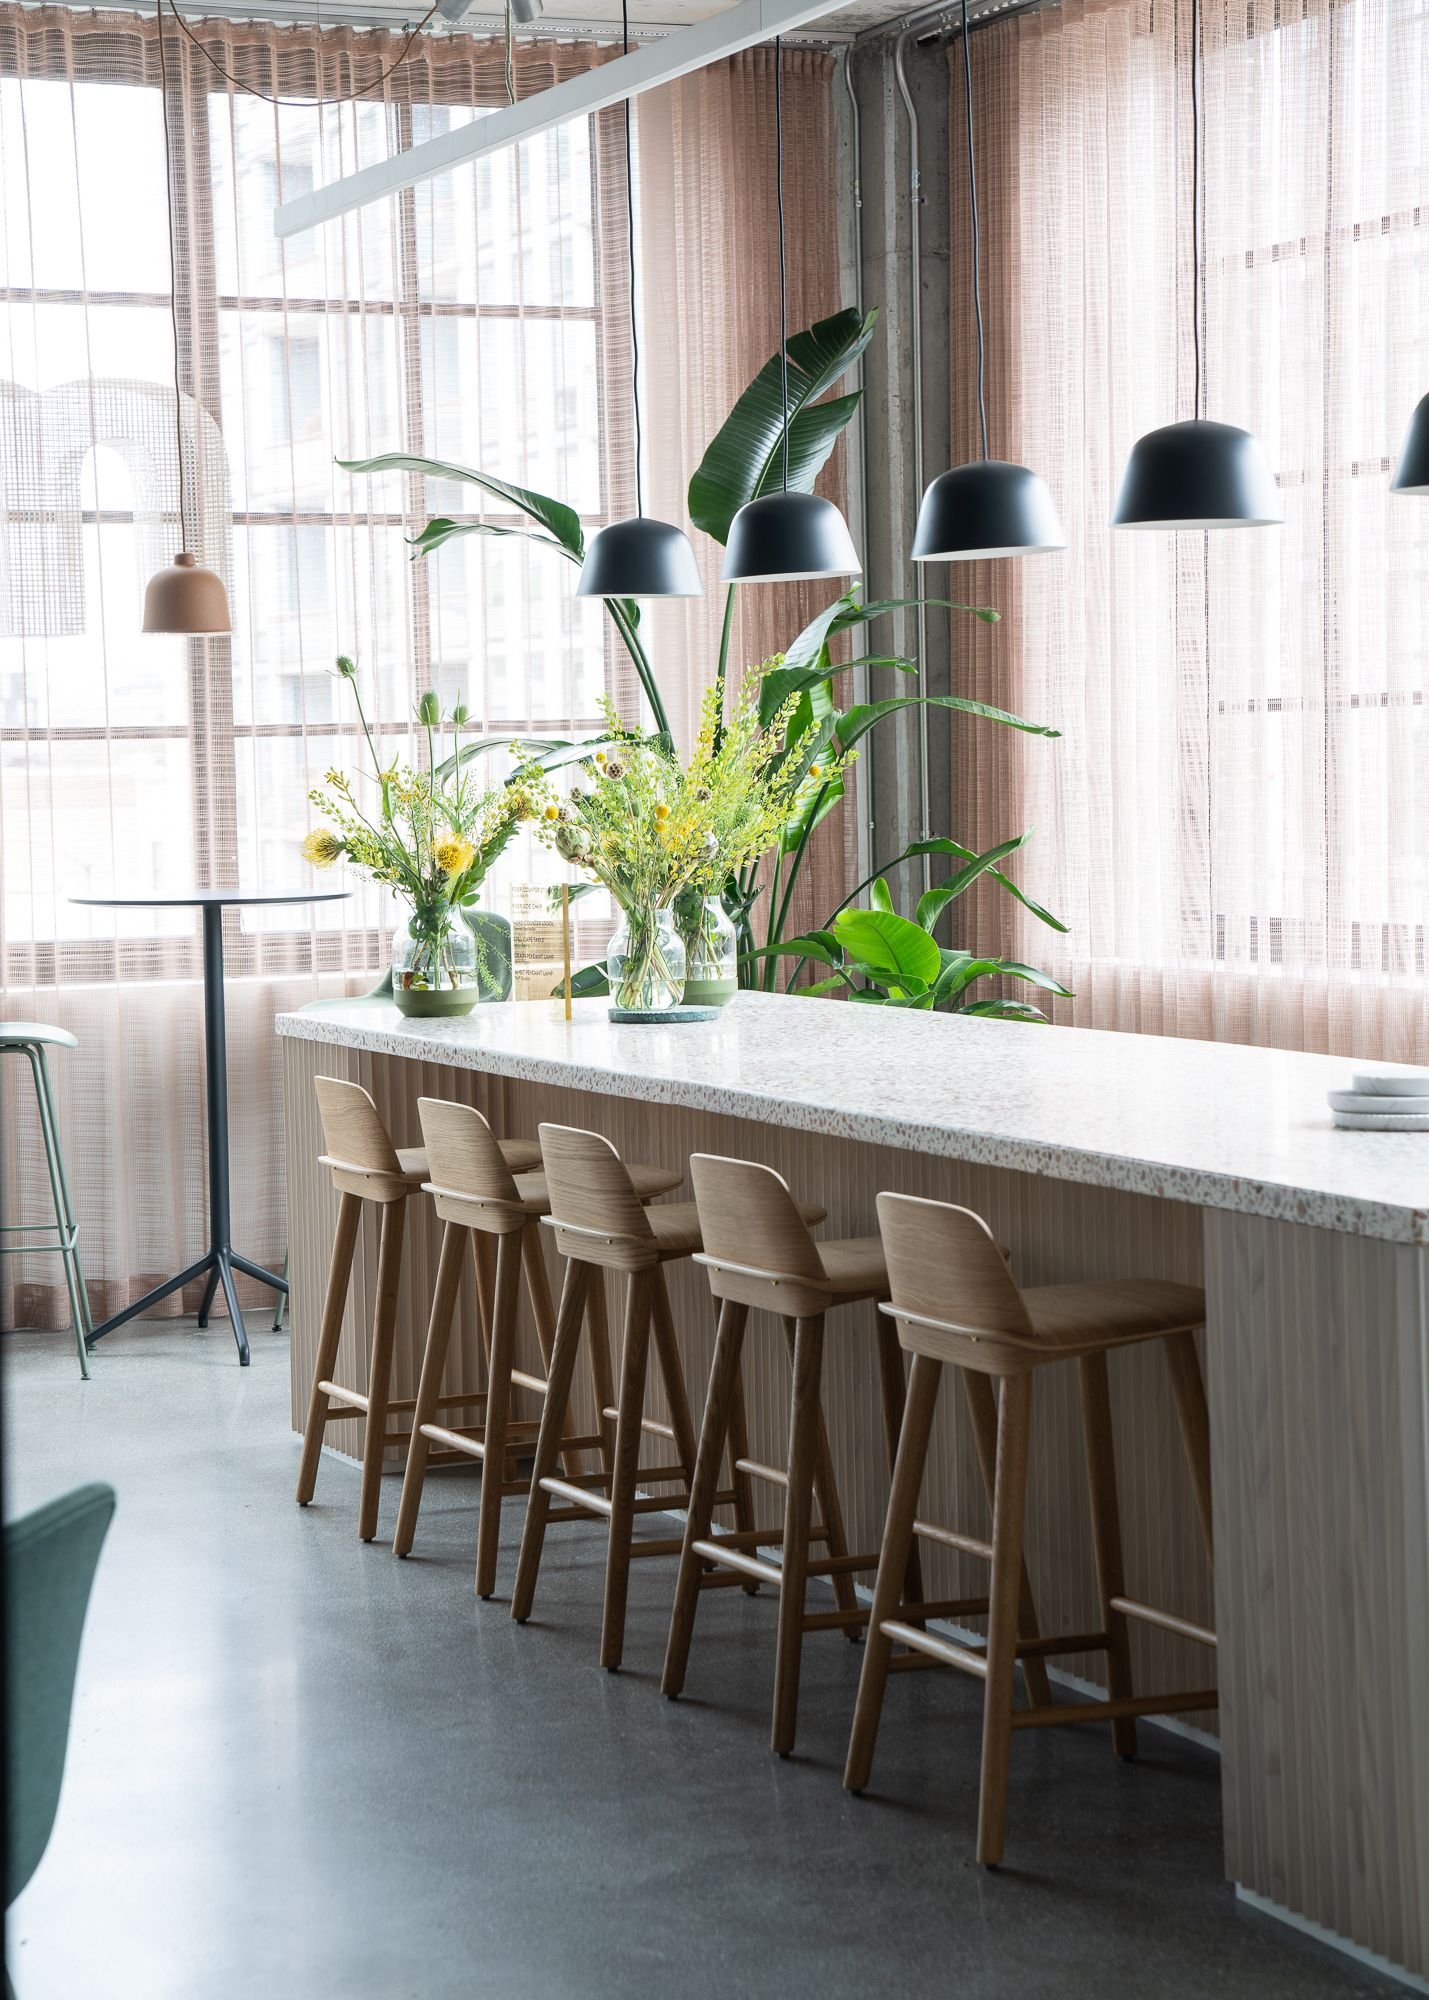 Scandinavian Bar Stool Inspiration For Office Interior From Muuto With Seamless Integration Of The Back Scandinavian Bar Stool Bar Stools Unique Office Spaces